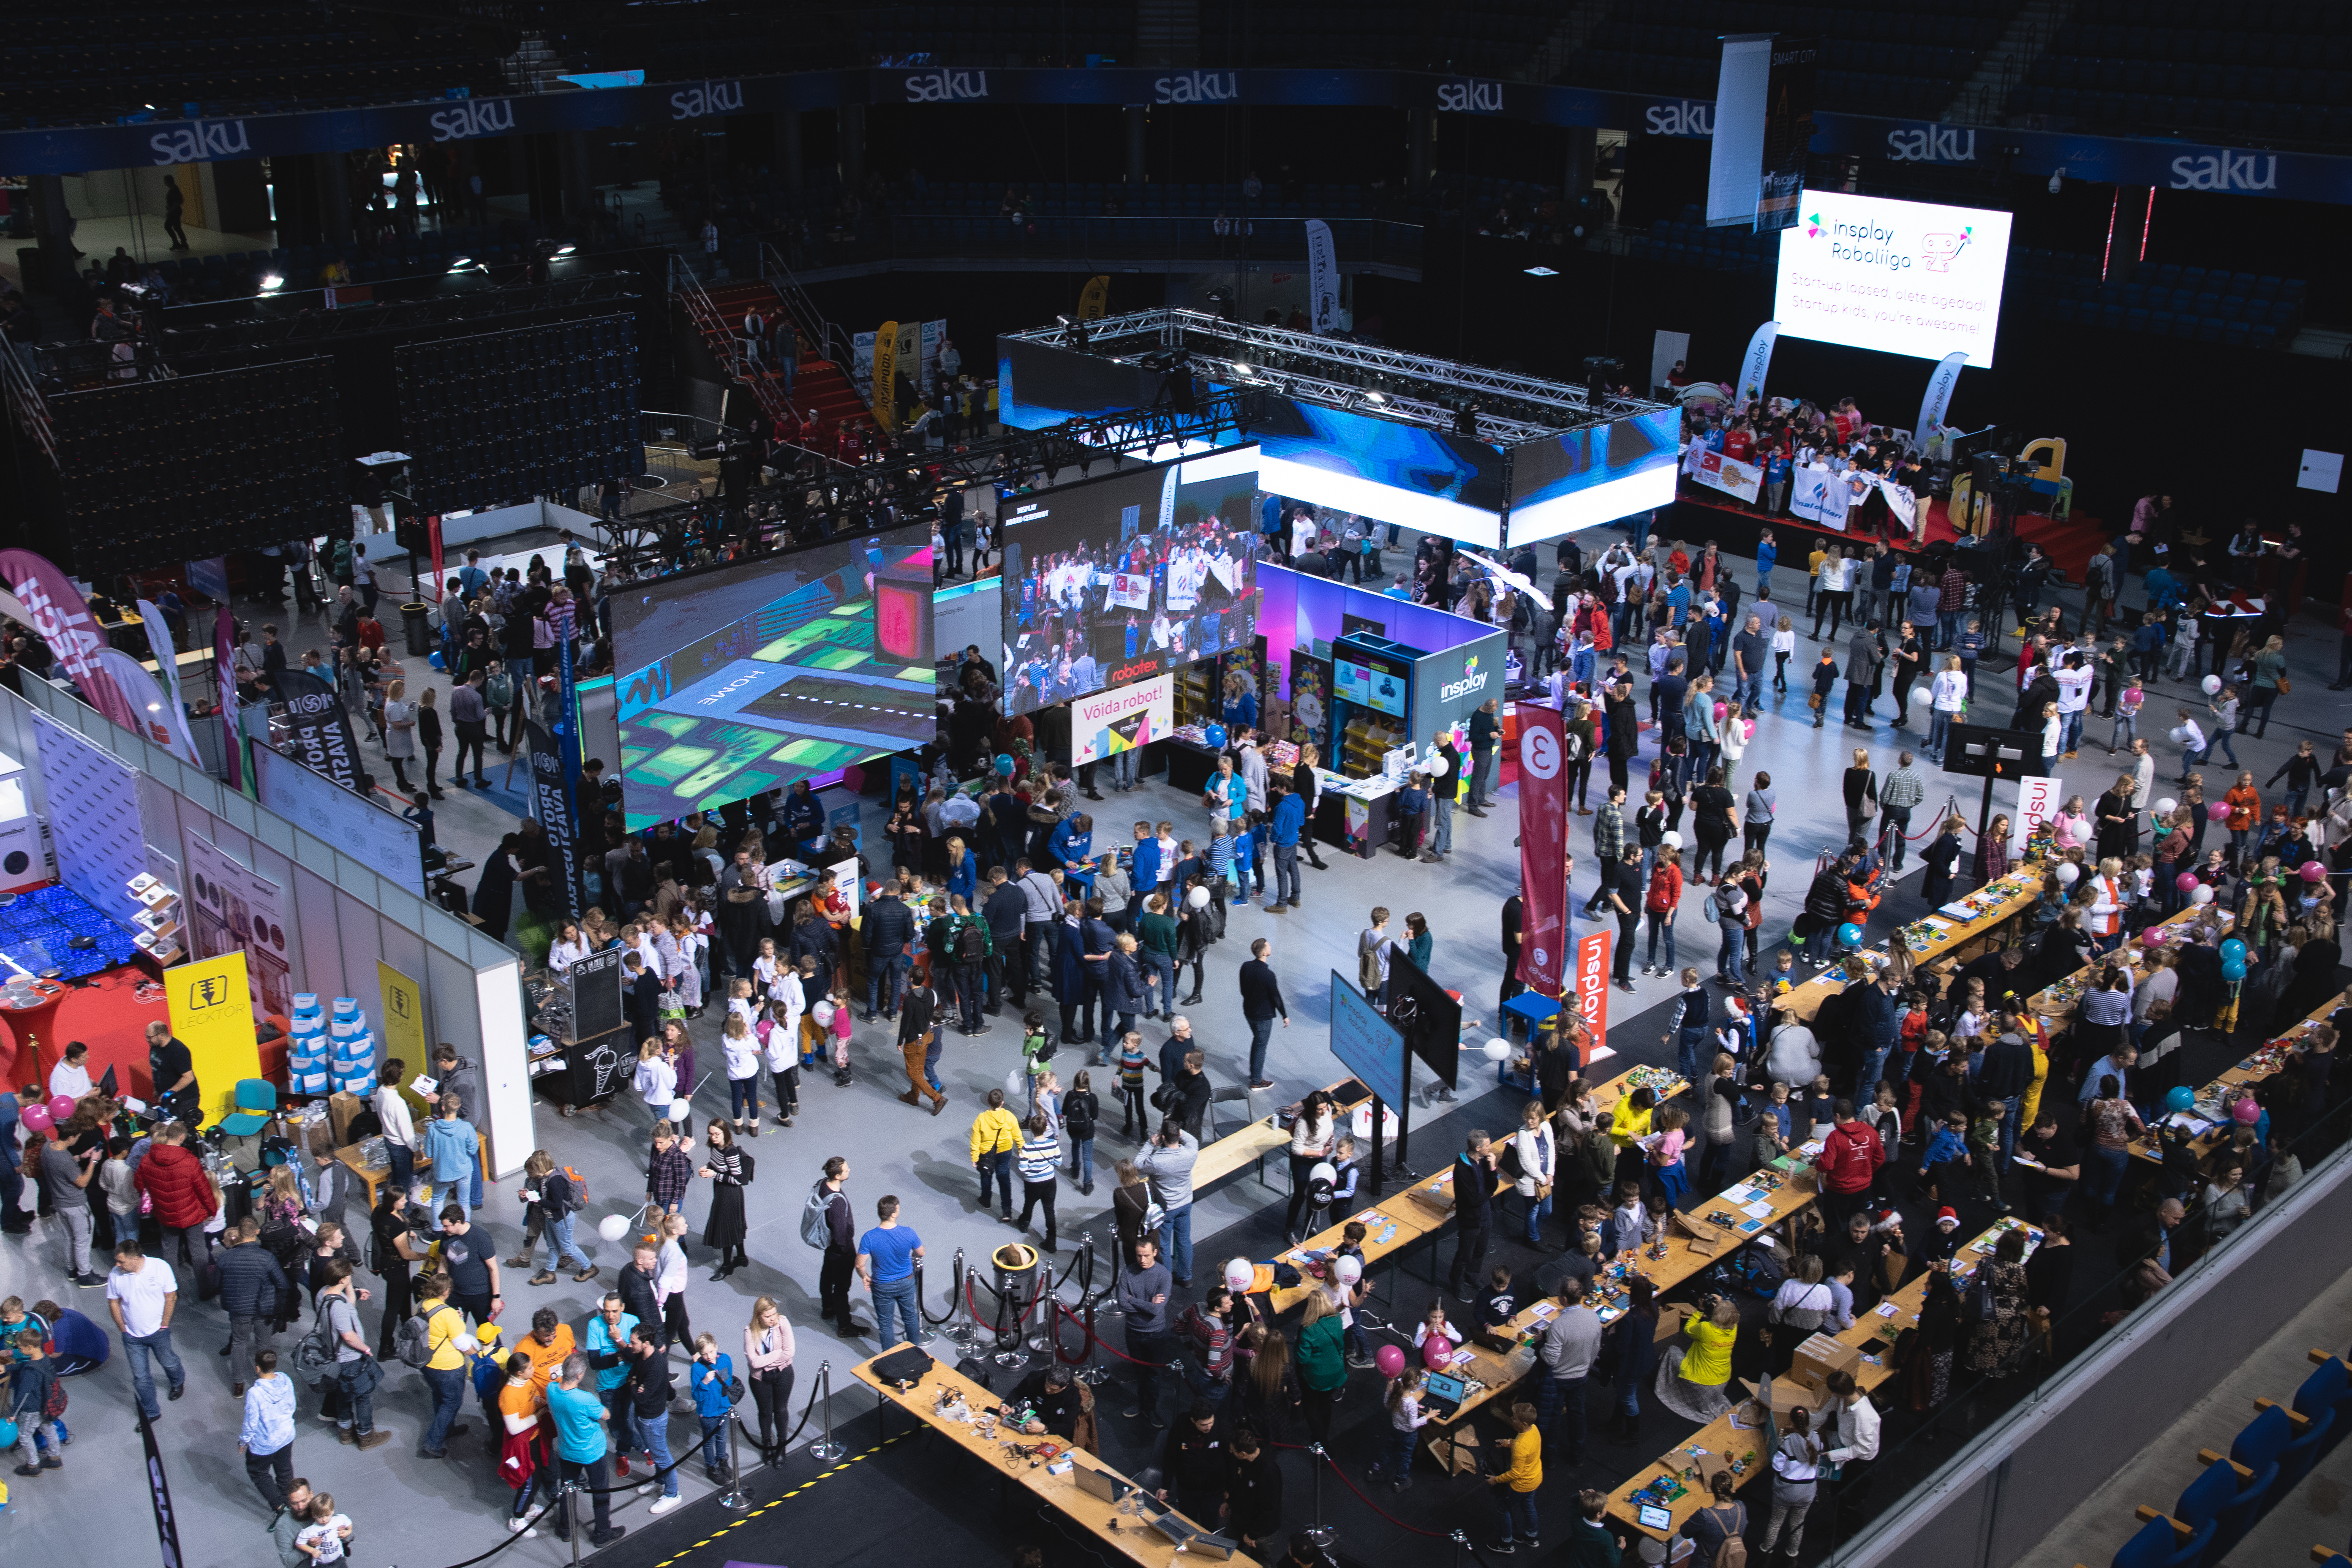 Registration for Robotex International competitions has started